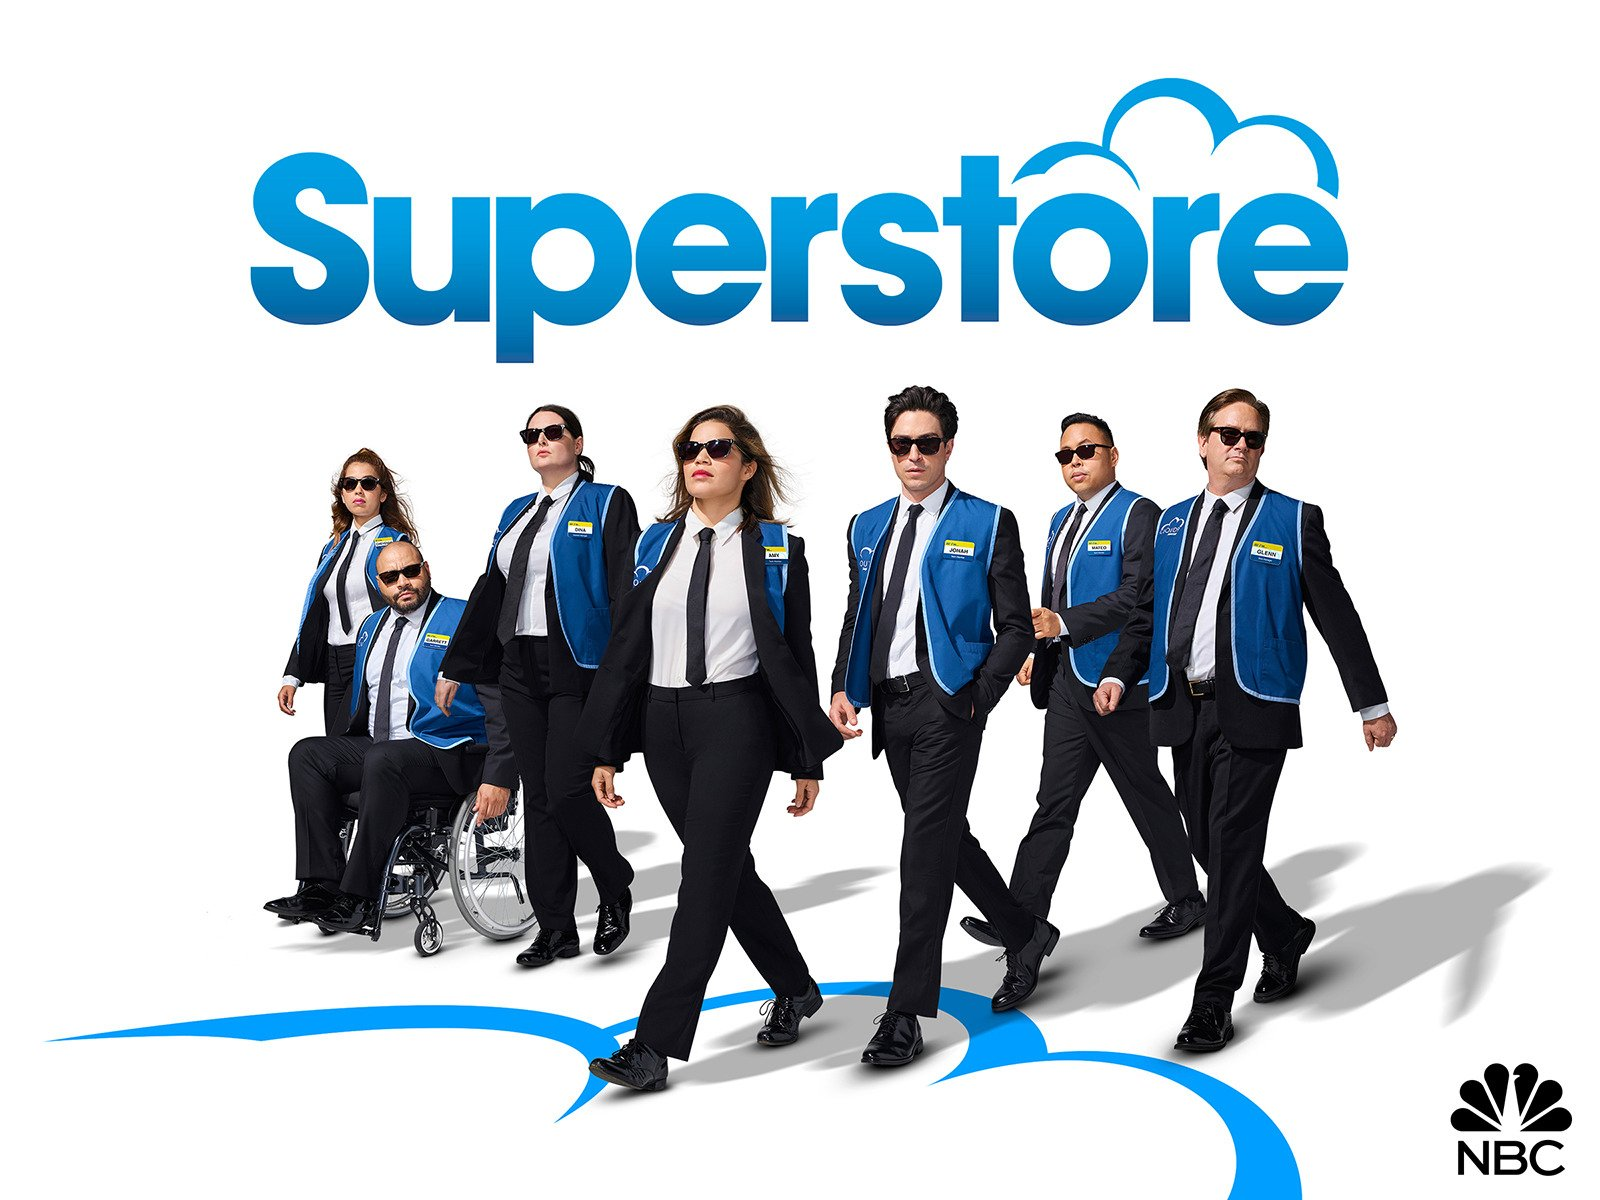 superstore.jpg